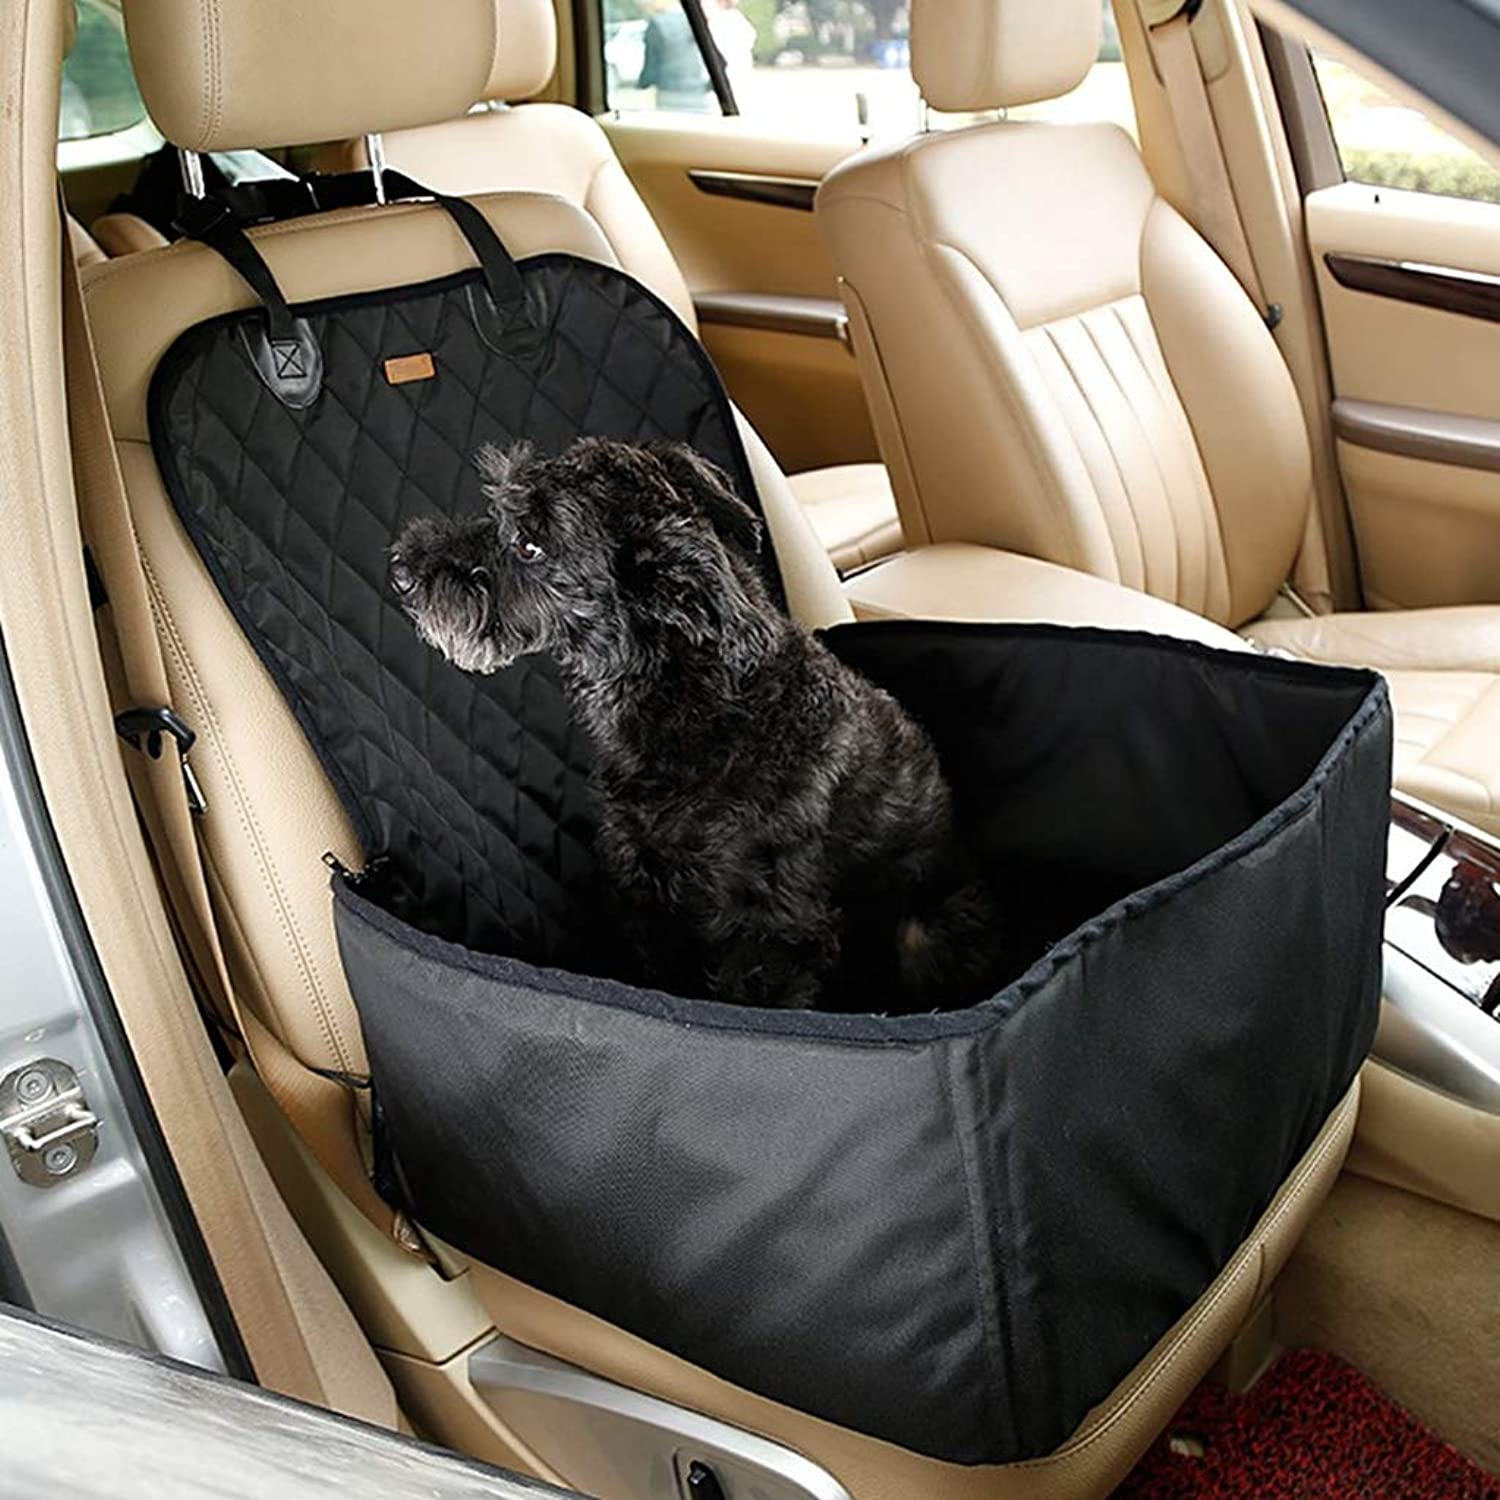 Pet Bucket Seat Cover Booster Seat 2 in 1 Deluxe Dog& Cat Front Seat Cover Cars Non Slip Backing Waterproof (Black)